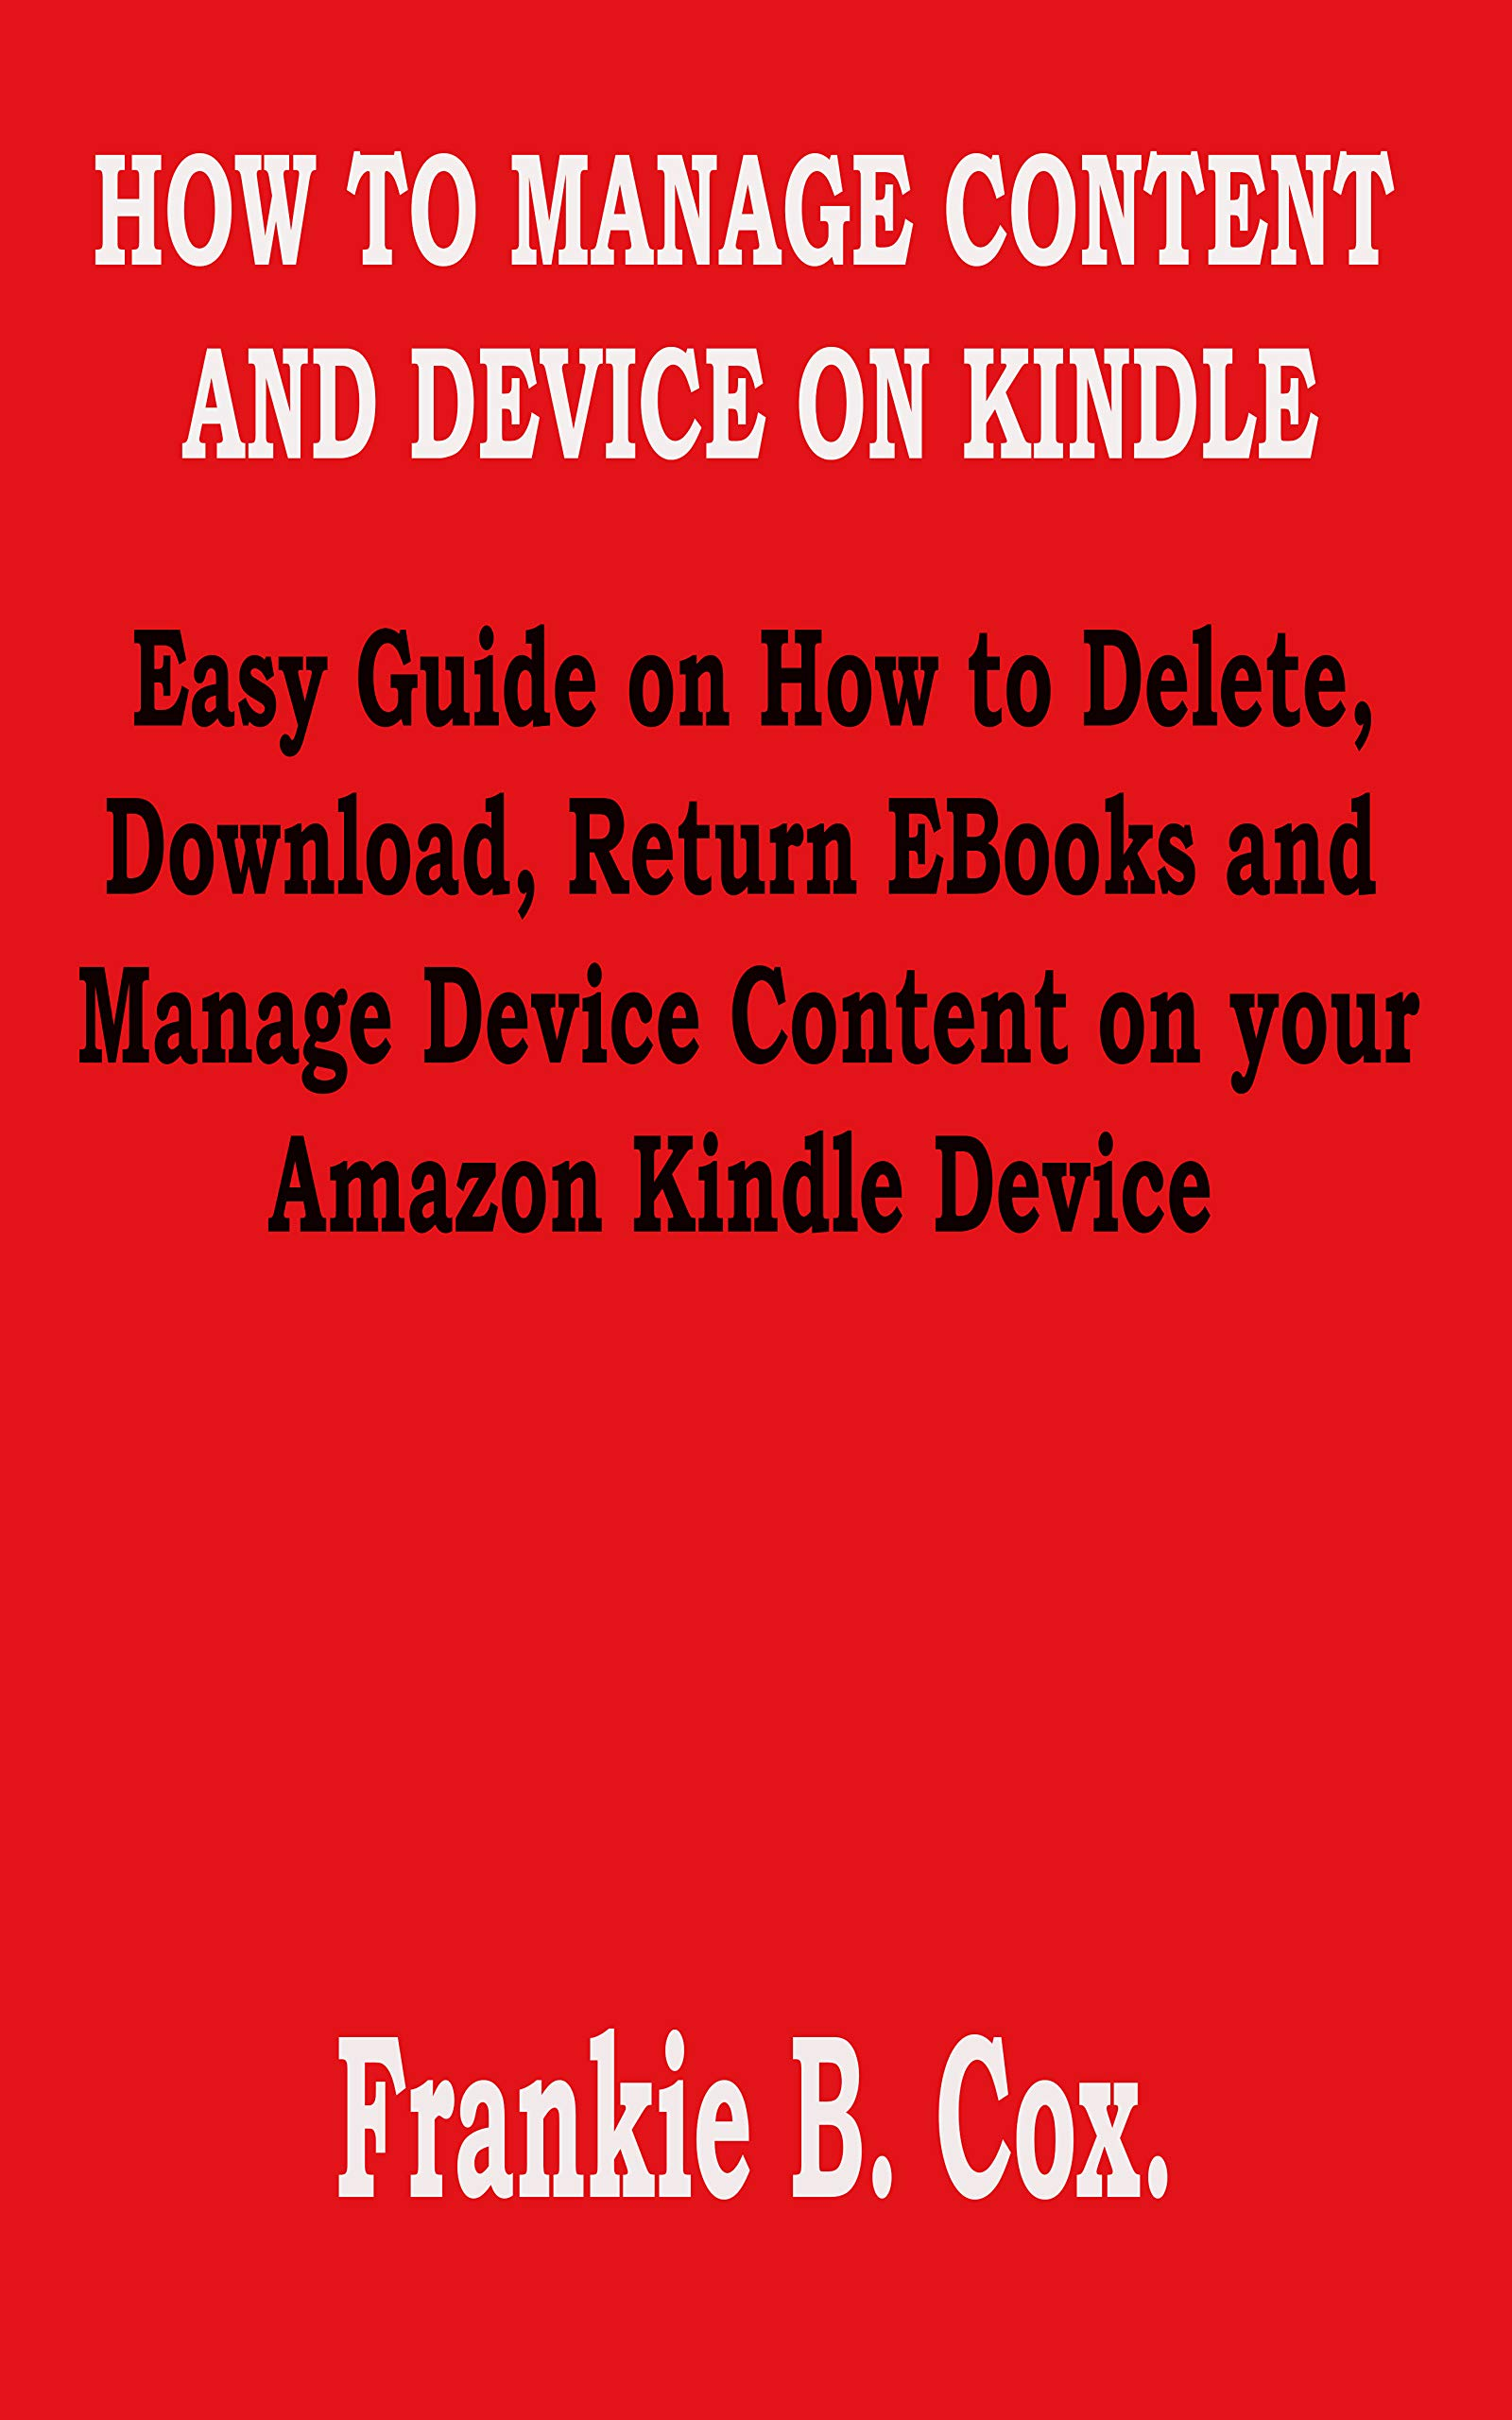 HOW TO MANAGE CONTENT AND DEVICE ON KINDLE: Easy Guide on How to Delete, Download, Return EBooks and Manage Device Content on your Amazon Kindle Device